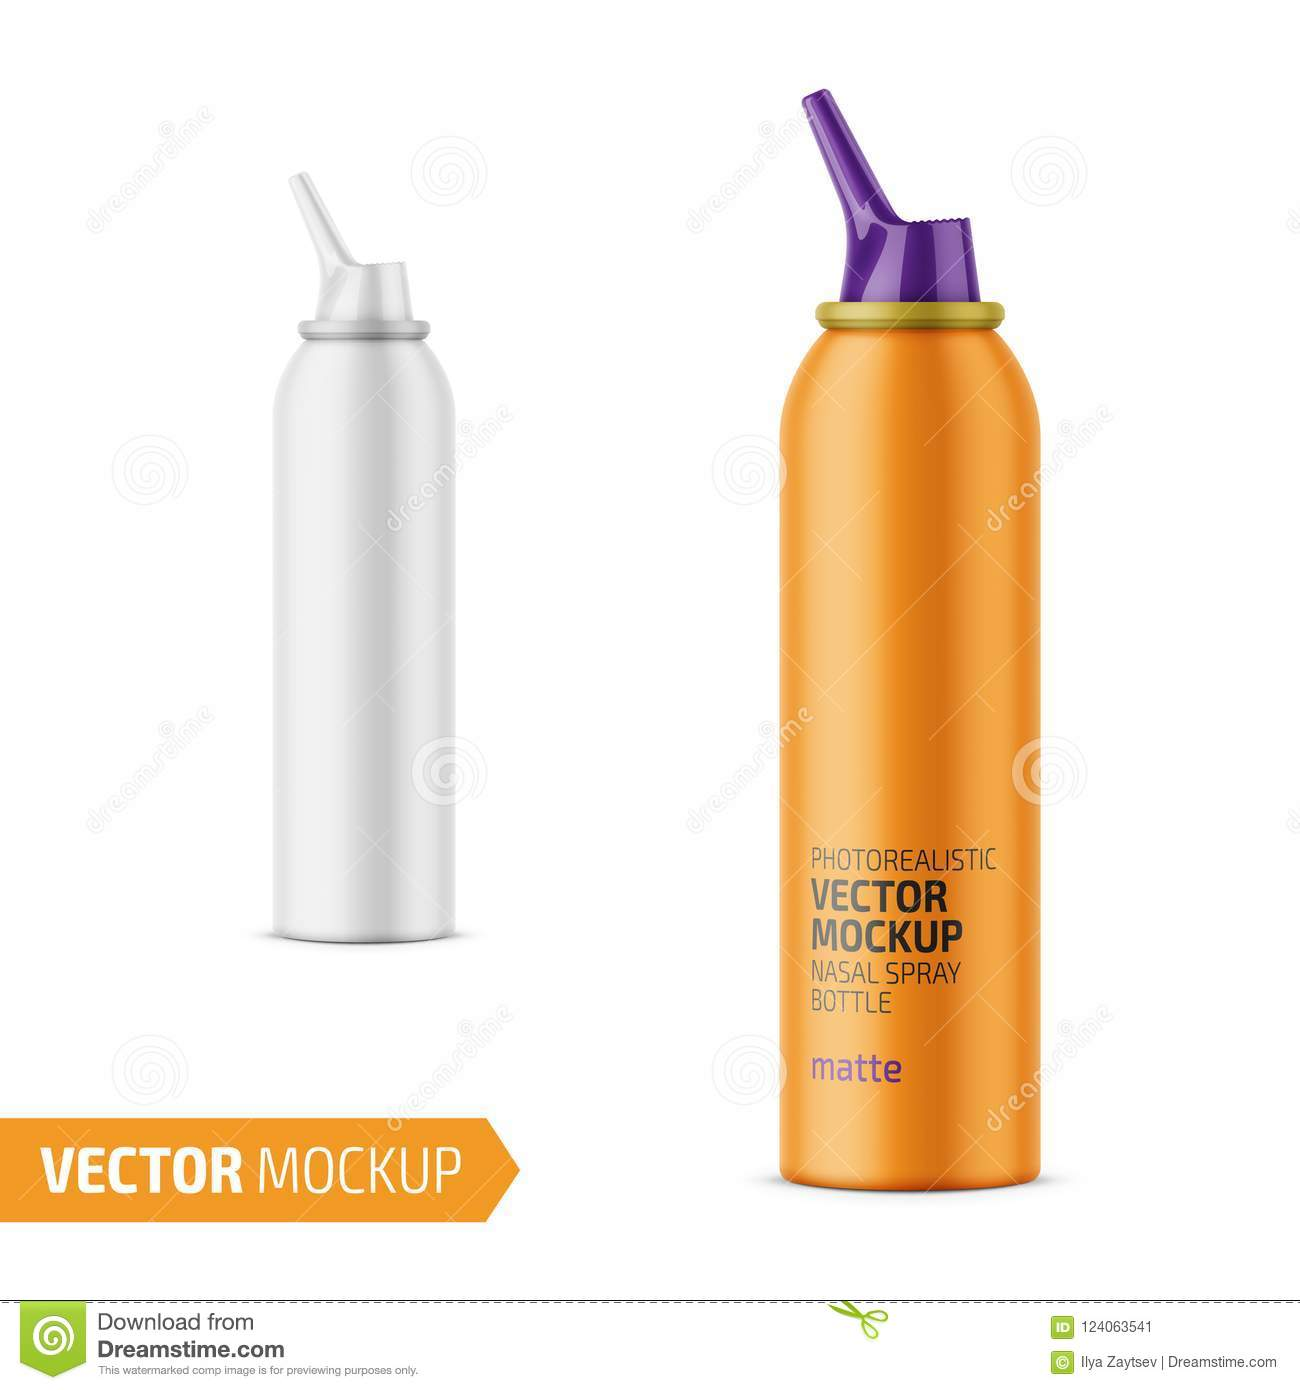 matte aluminum nasal spray bottle with label stock vector